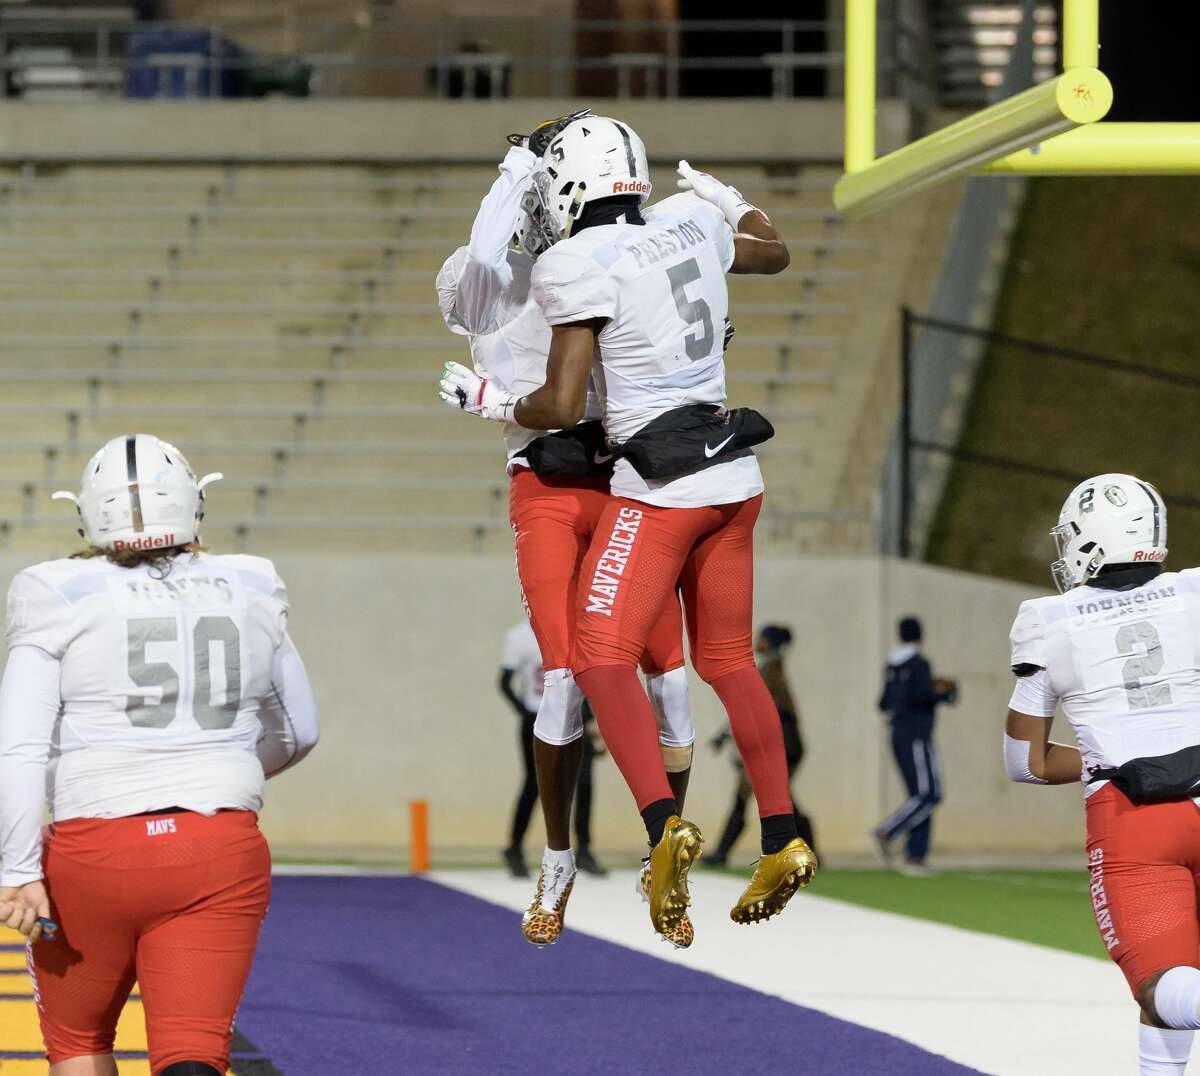 PHOTOS: Manvel vs. Temple Jalen Preston (5) of the Manvel Mavericks celebrates his touchdown in the first half against the Temple Wildcats with Kam Scott (8) in a high school football game on Friday, December 8, 2017 at Blackshear Field at Prairie View A&M University.